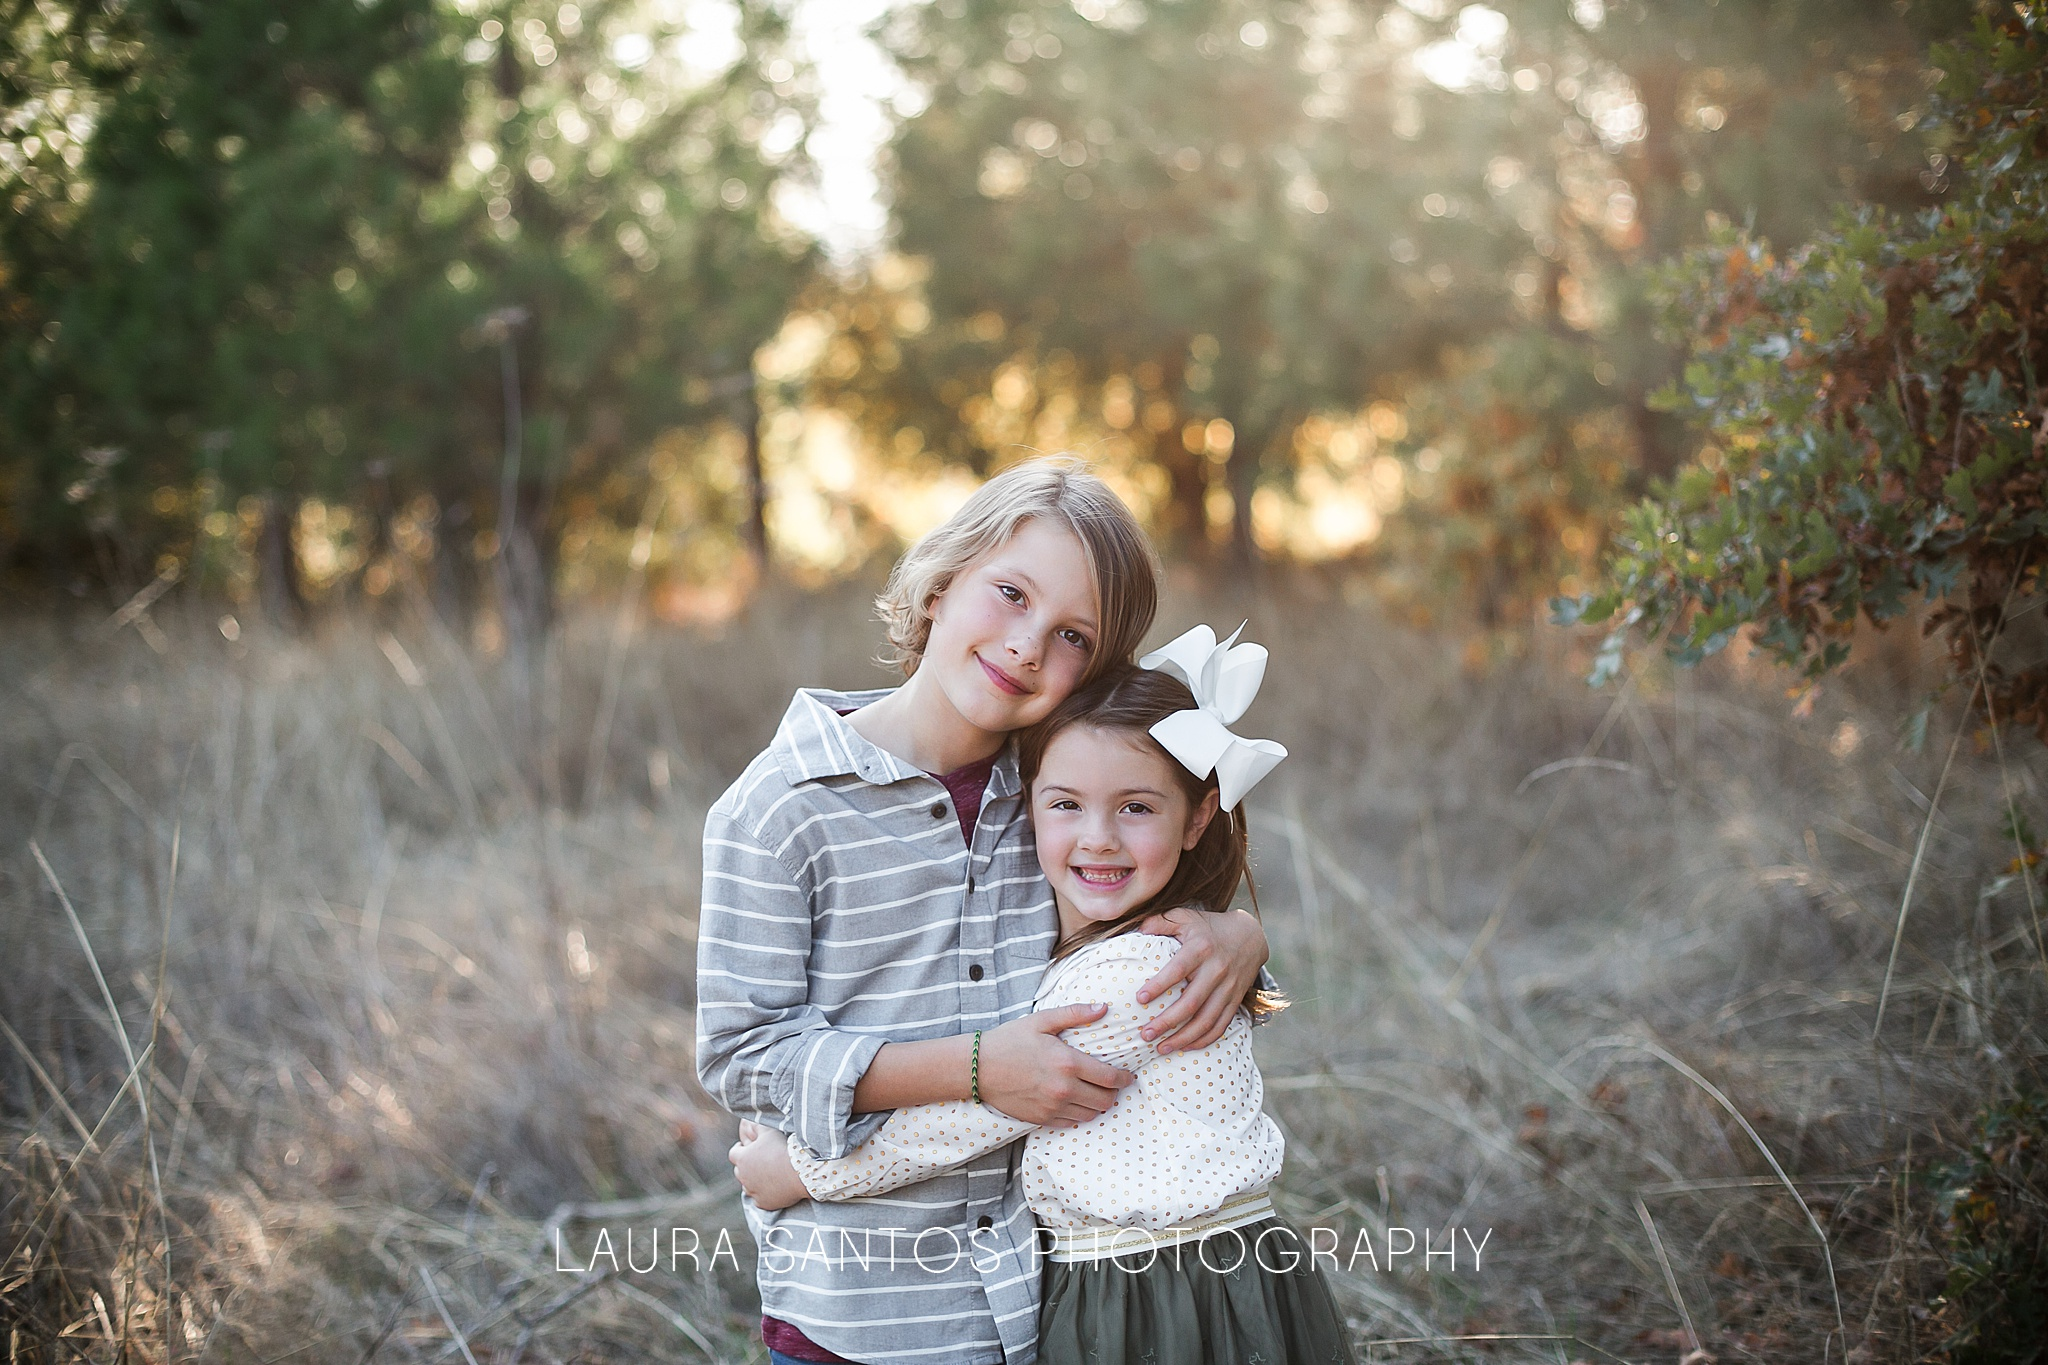 Laura Santos Photography Portland Oregon Family Photographer_0891.jpg